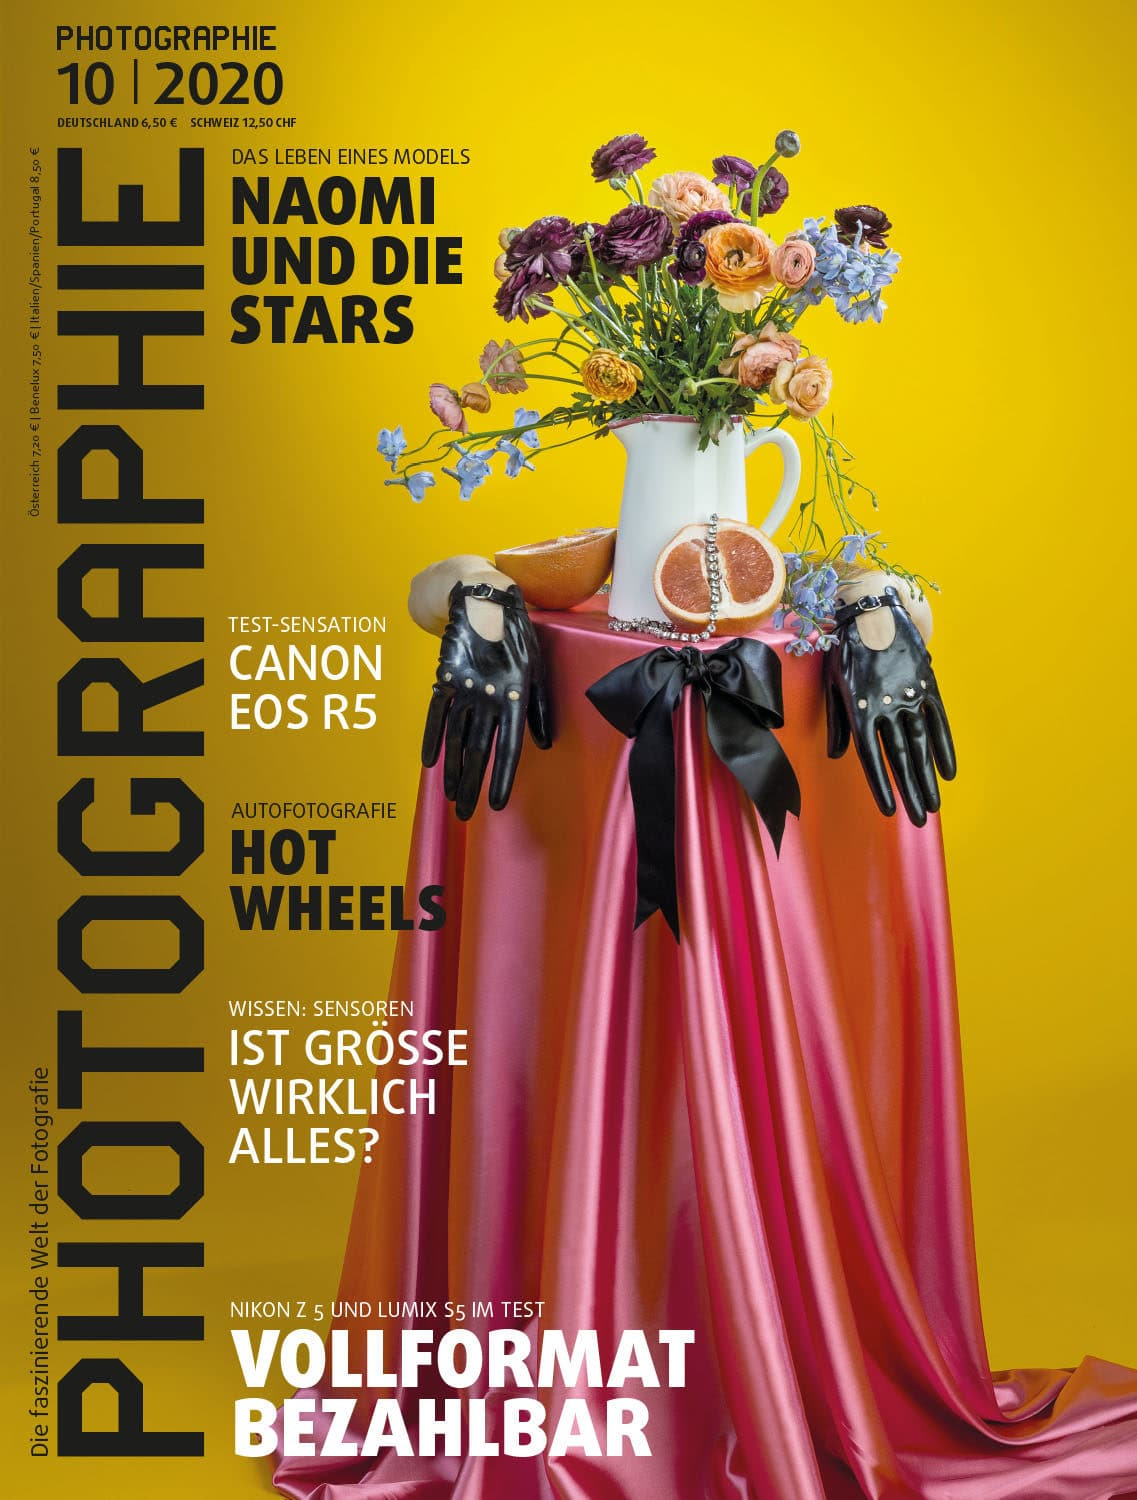 PHOTOGRAPHIE Digitales Magazin 10 2020 Cover